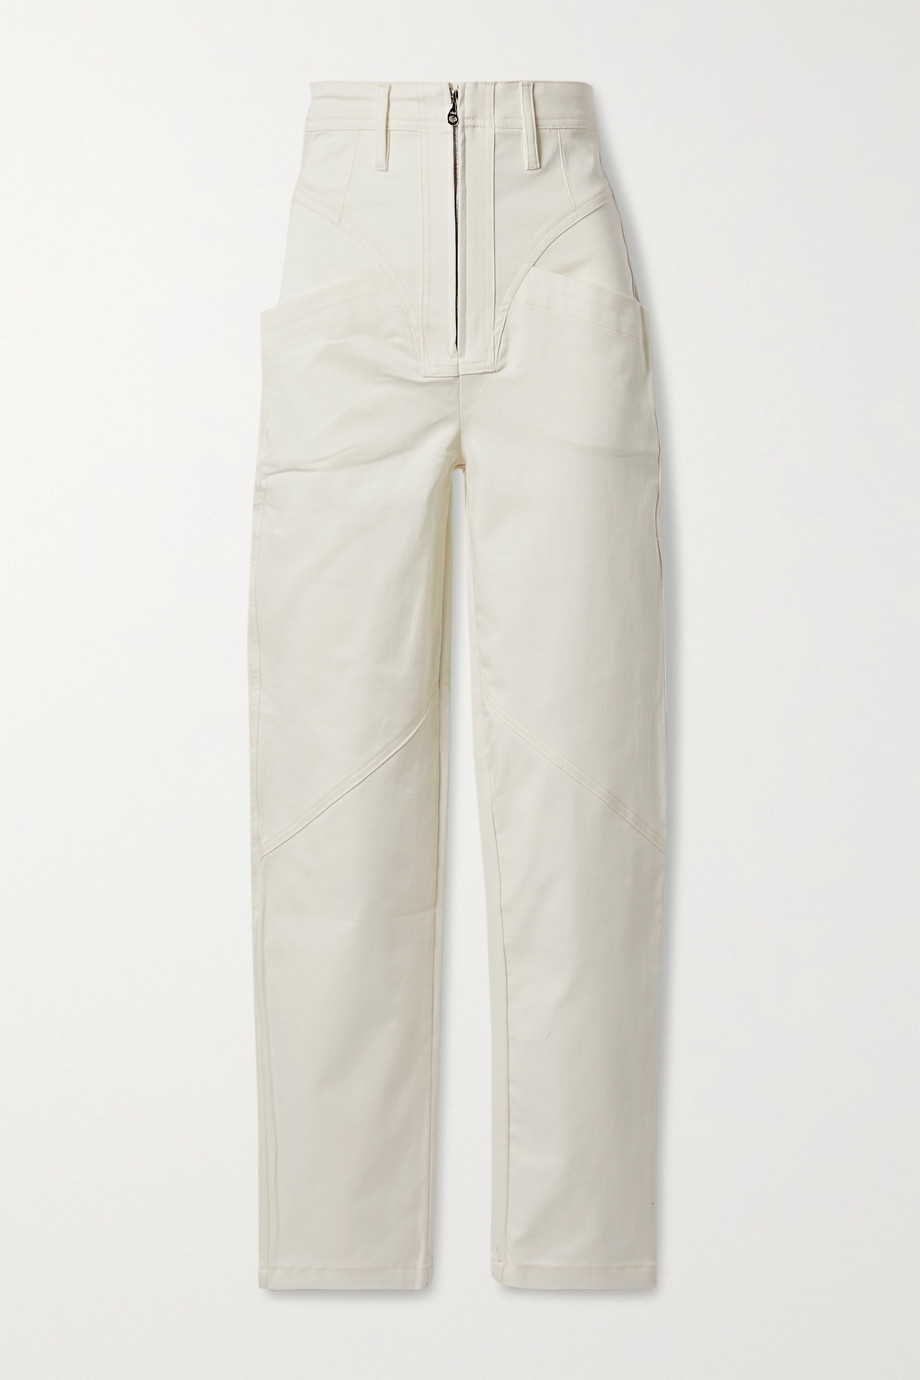 TRE by Natalie Ratabesi The Lynne cotton-blend twill skinny pants